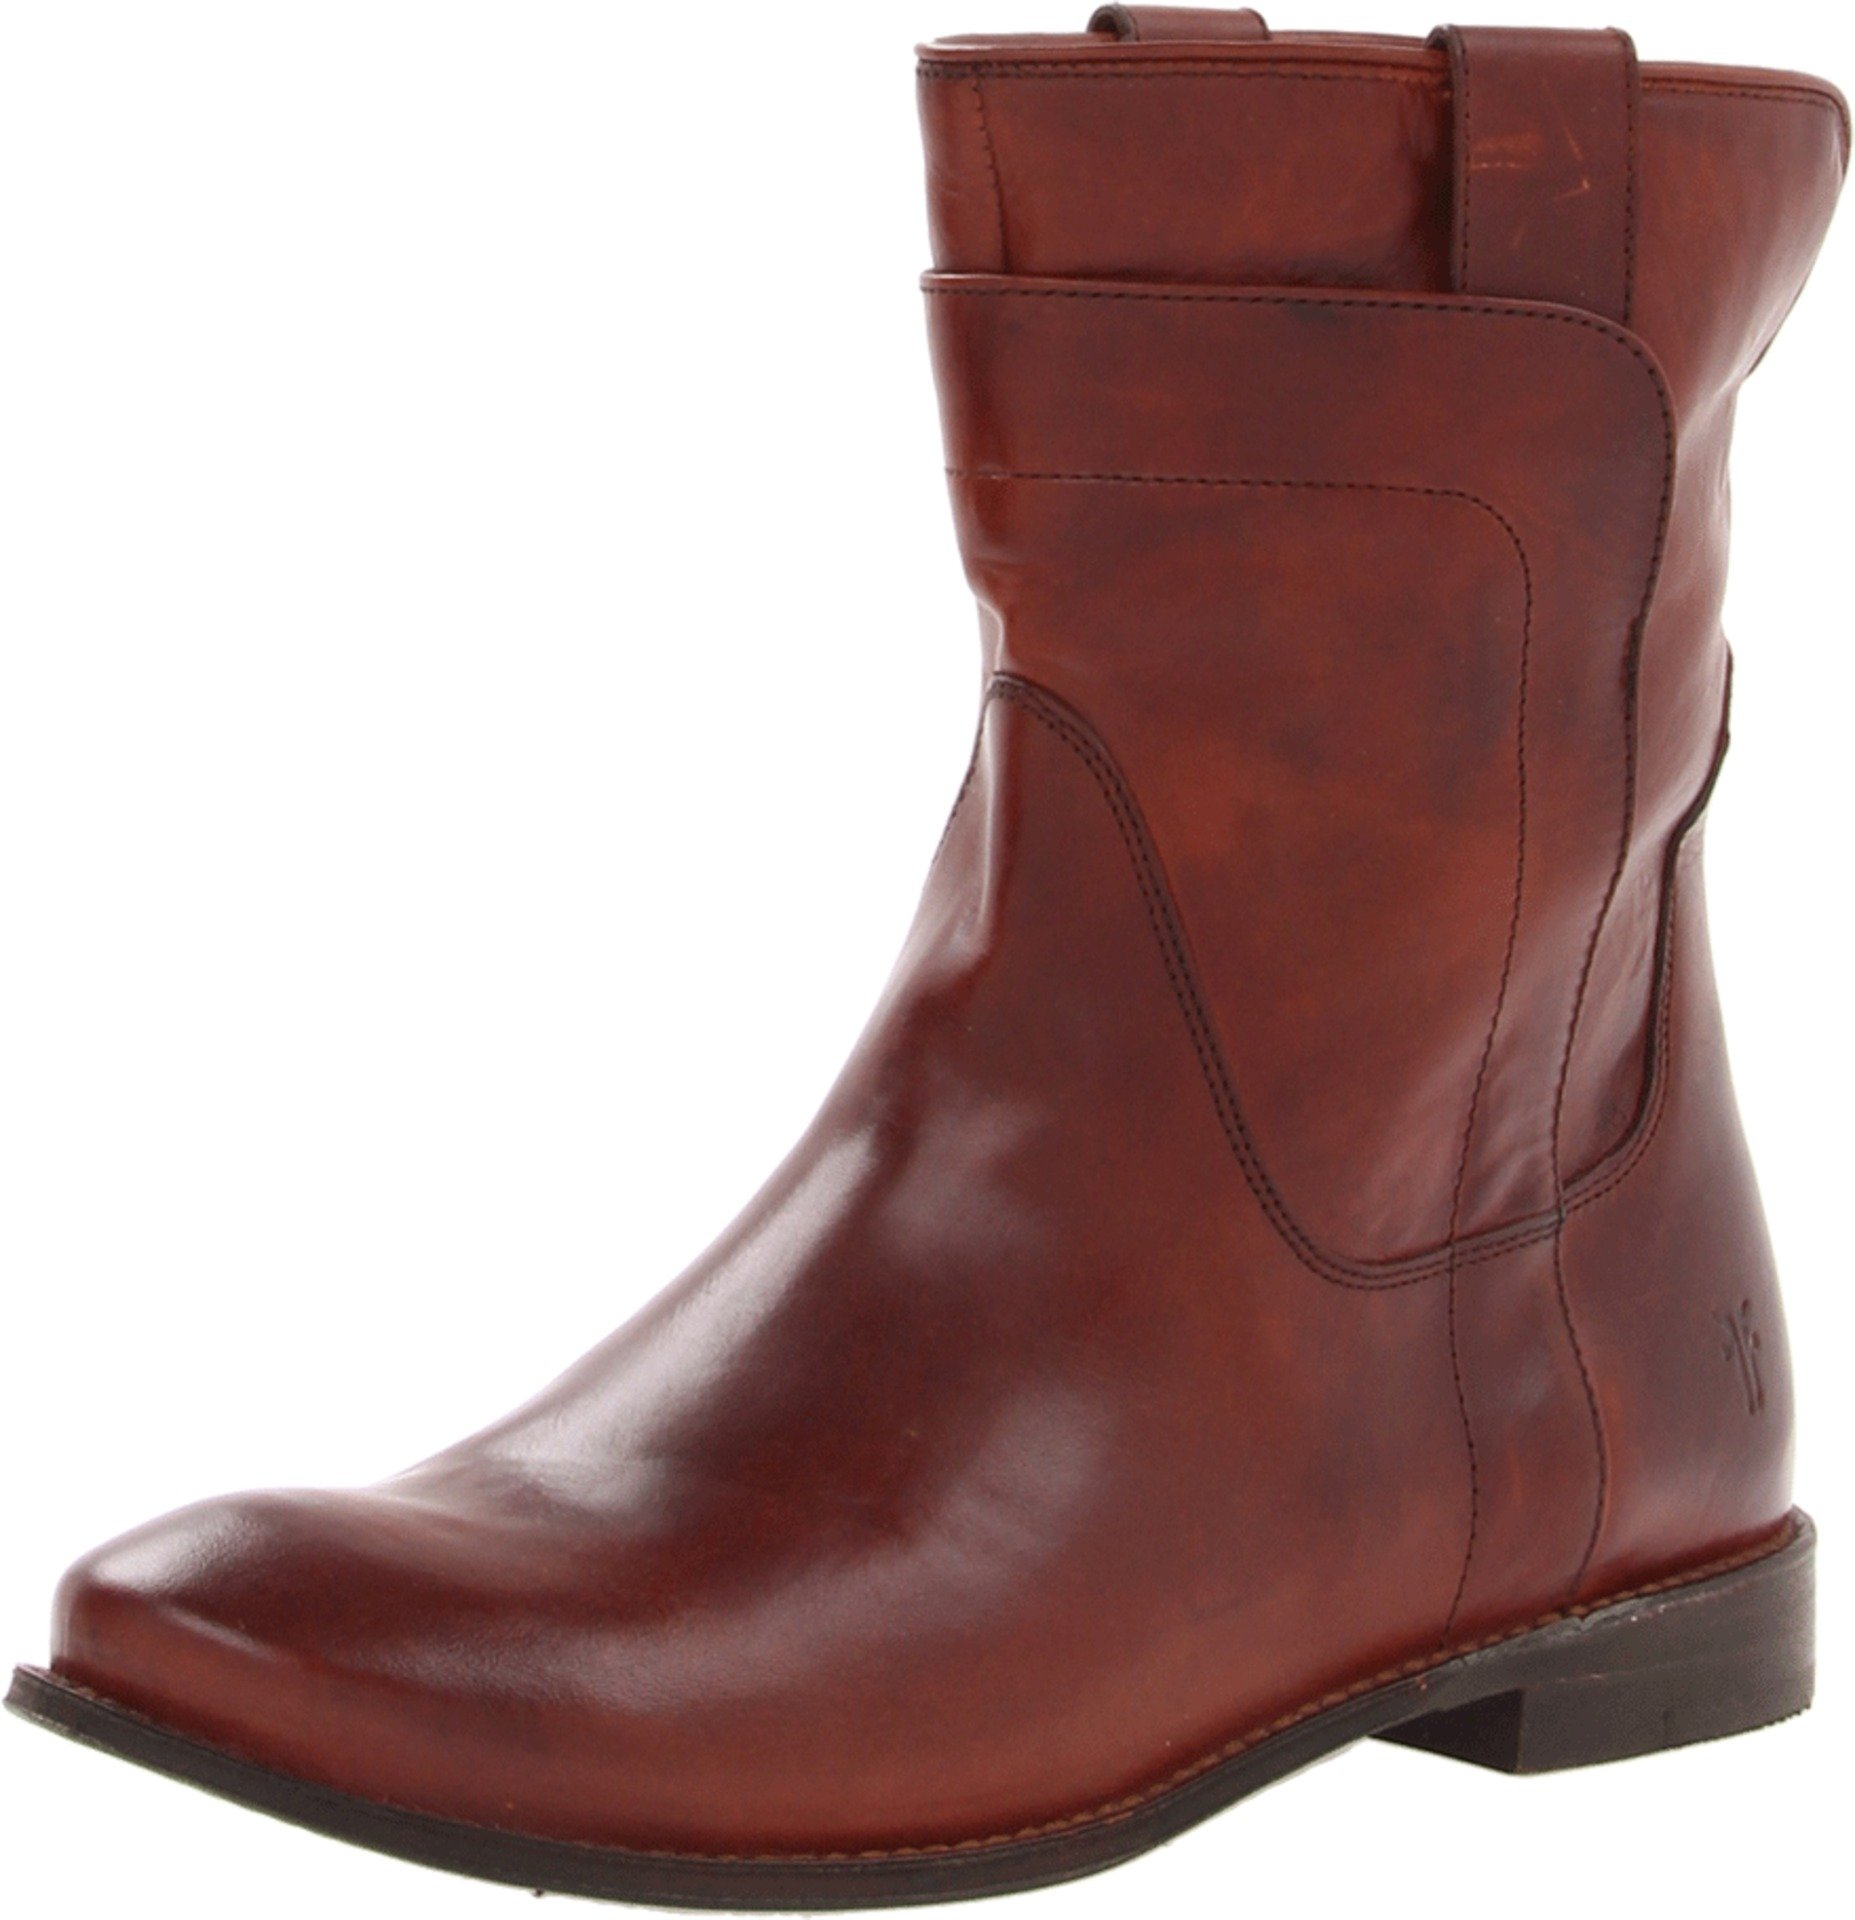 FRYE Women's Paige Short Riding Boot, Redwood Smooth Vintage Leather, 7.5 M US